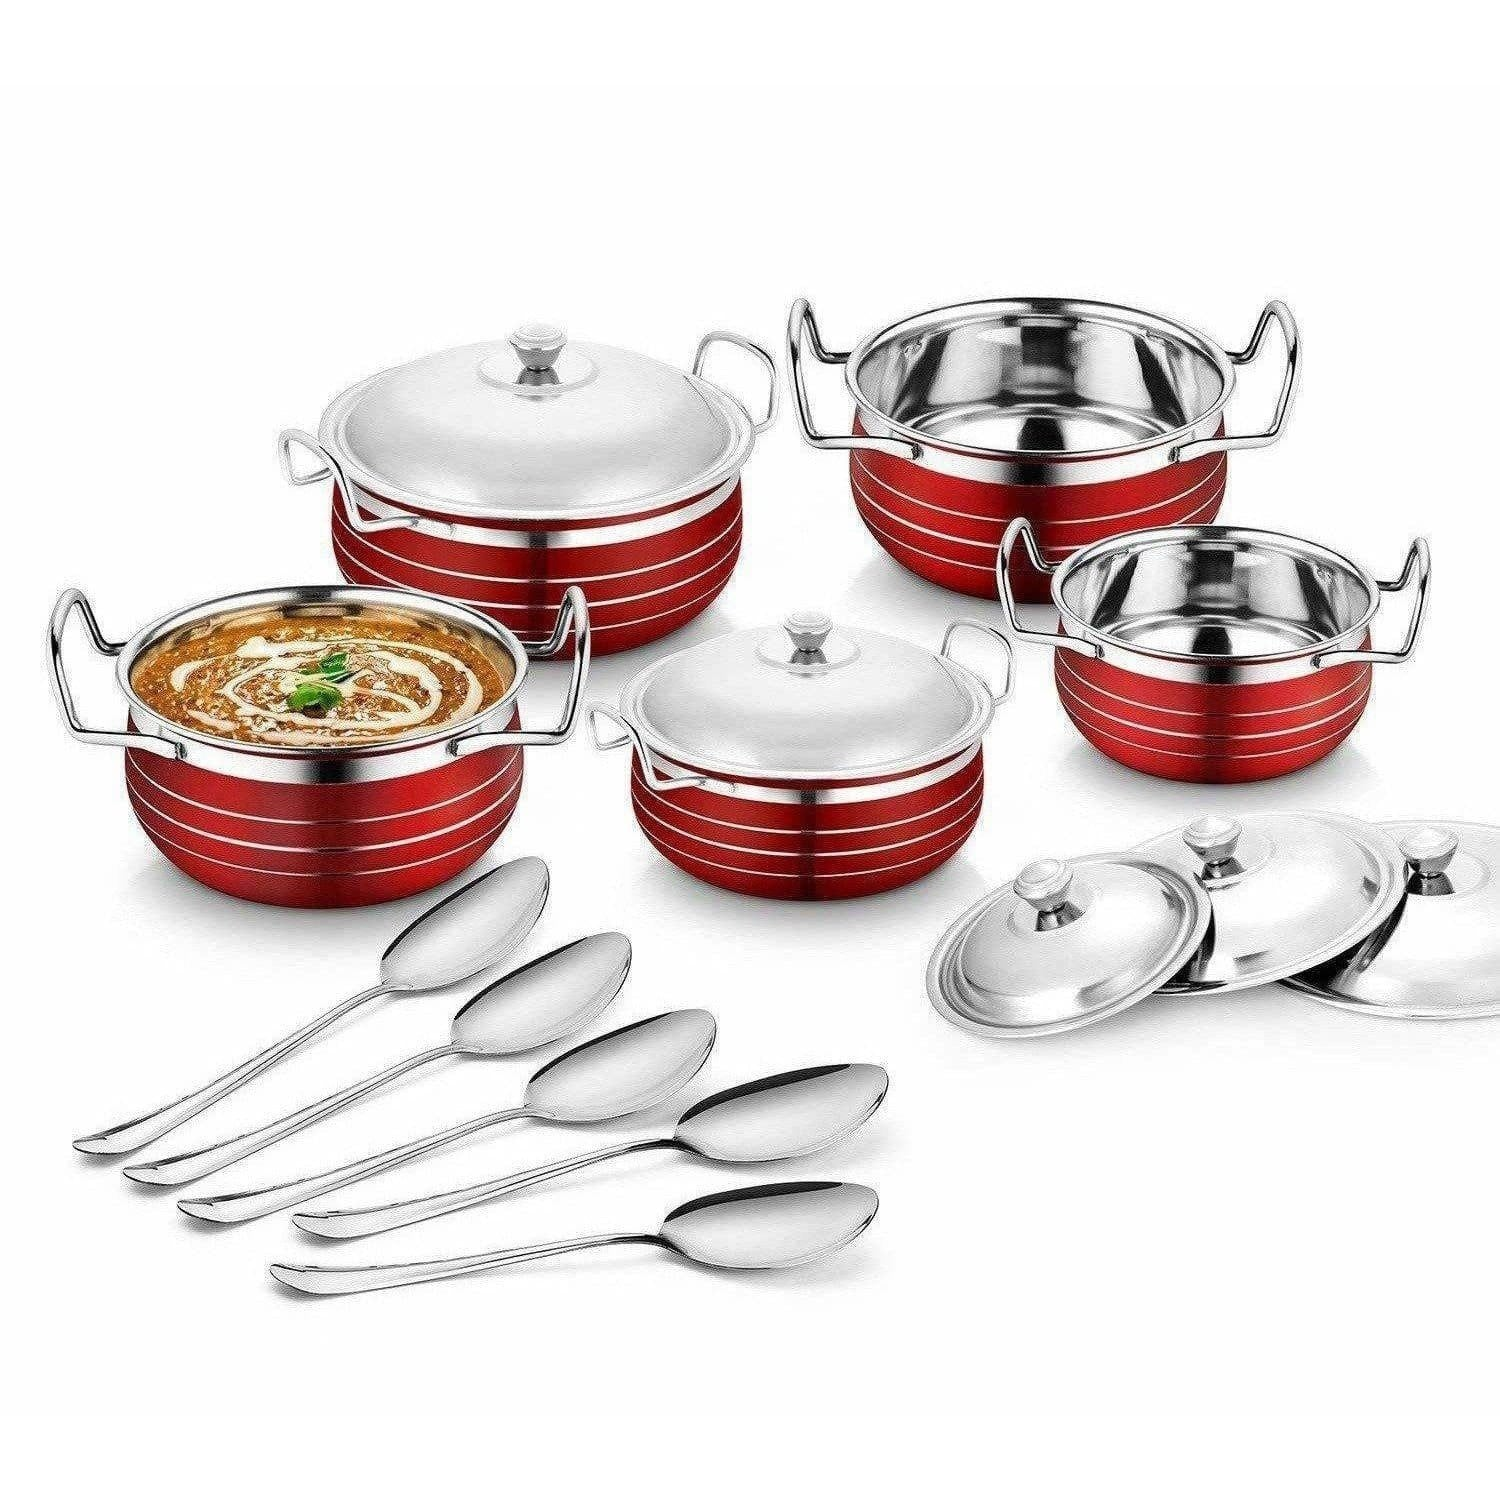 Stainless Steel Handi Copper Set (10-Pieces) - Distacart